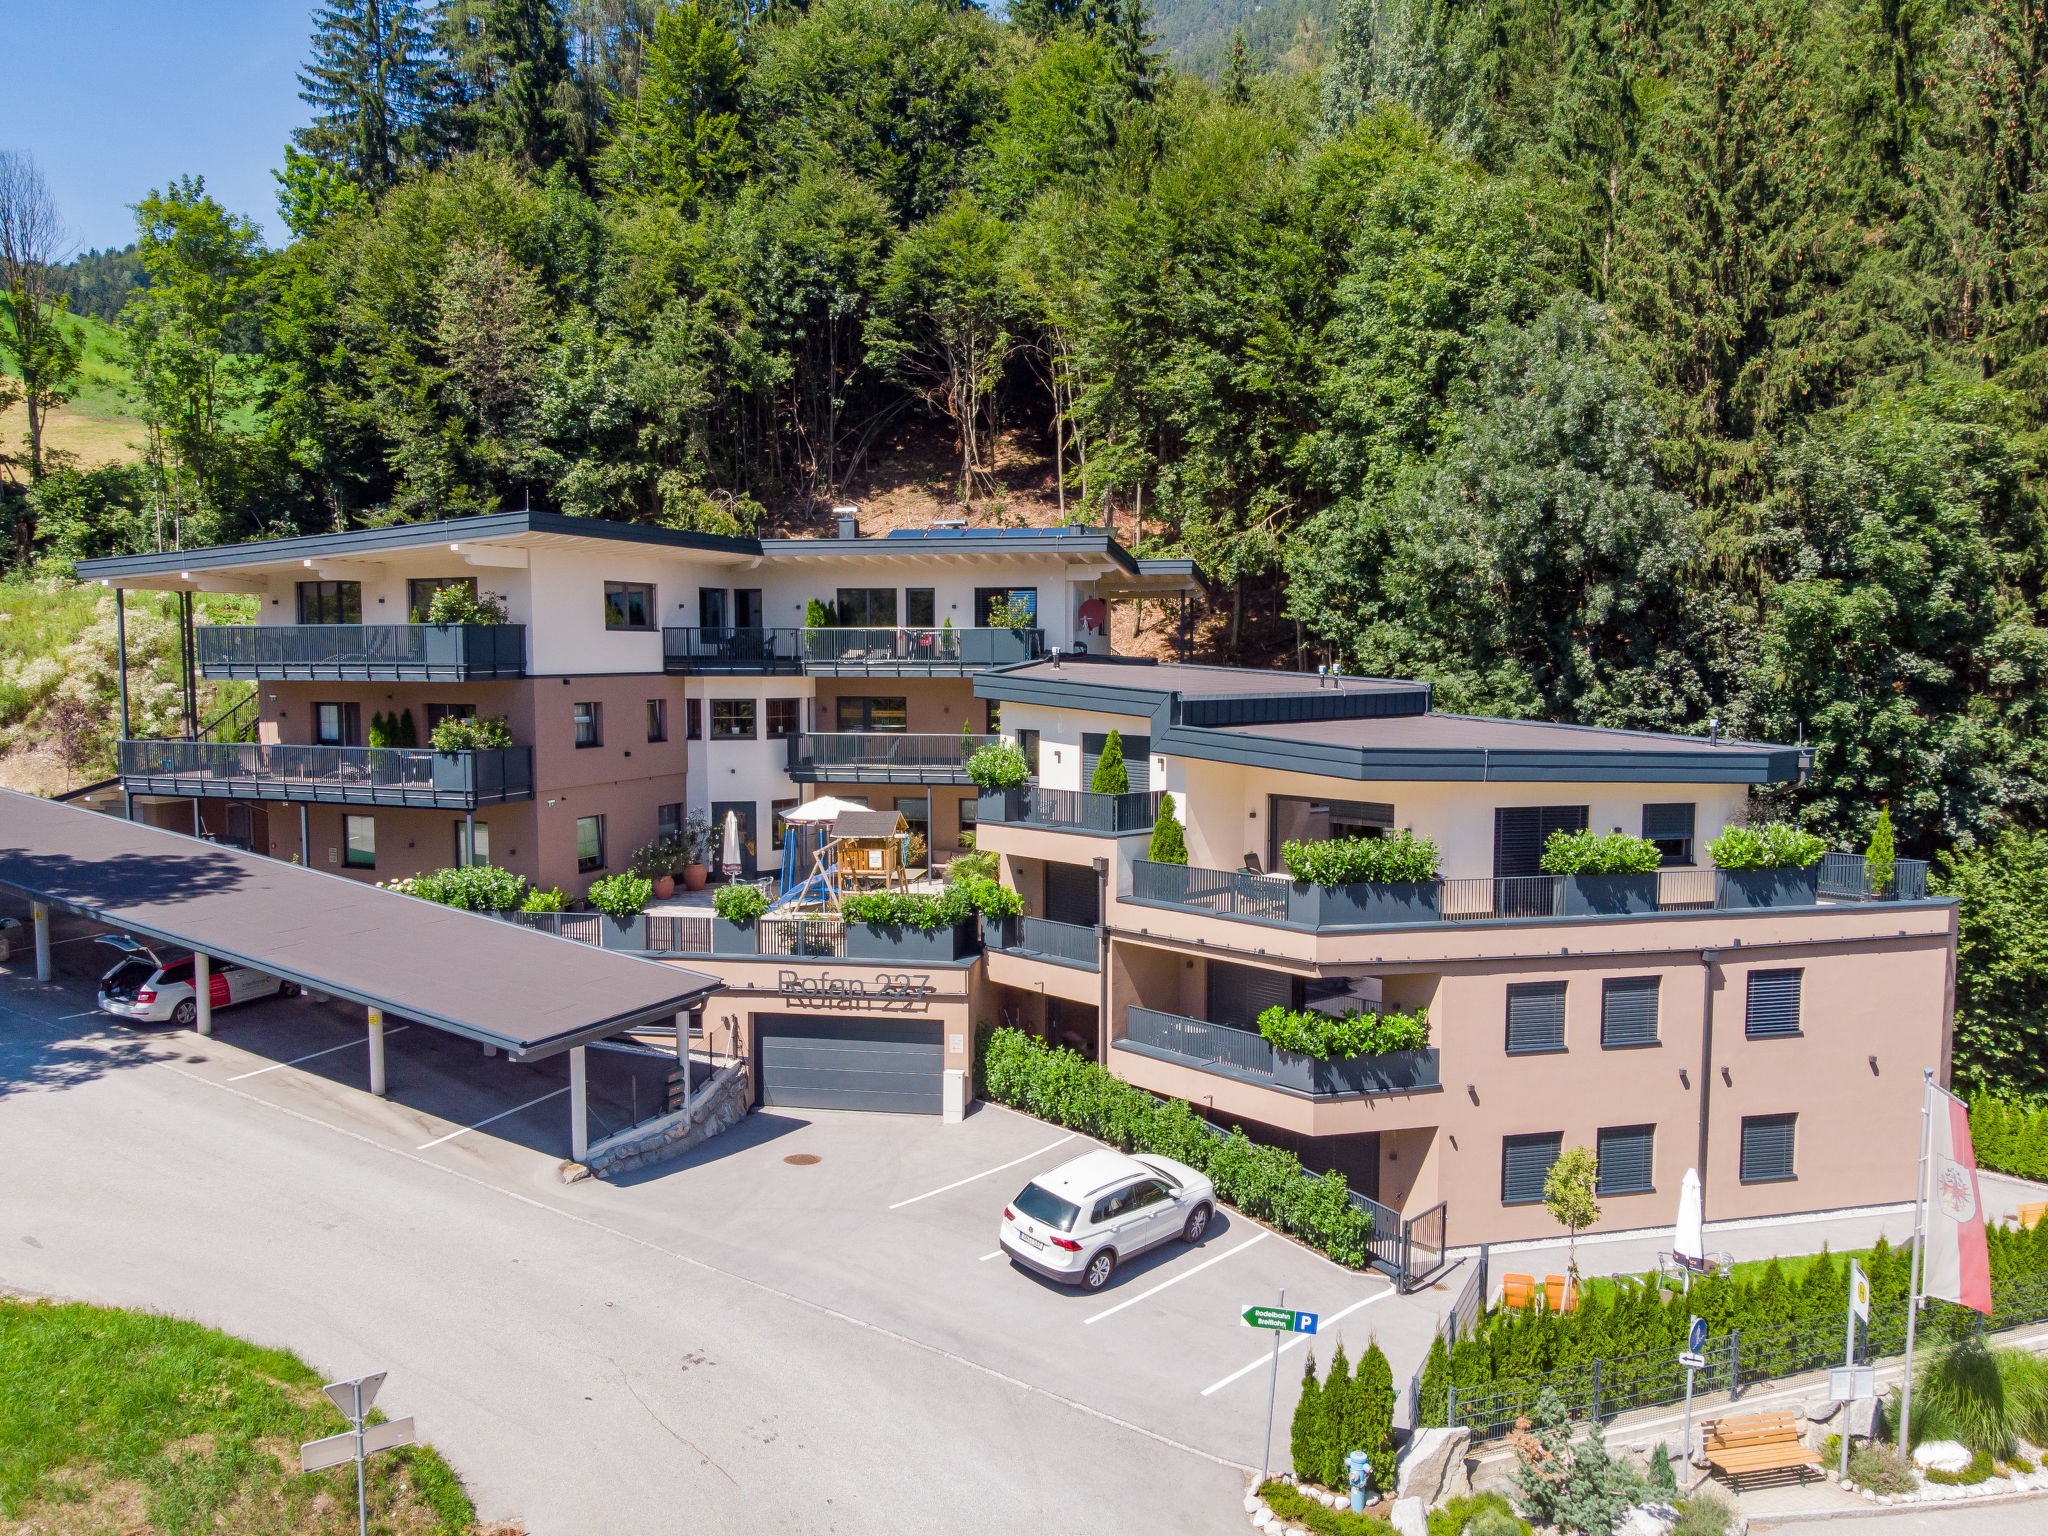 Hotels in Eben am Achensee. Book your hotel - omr-software.com